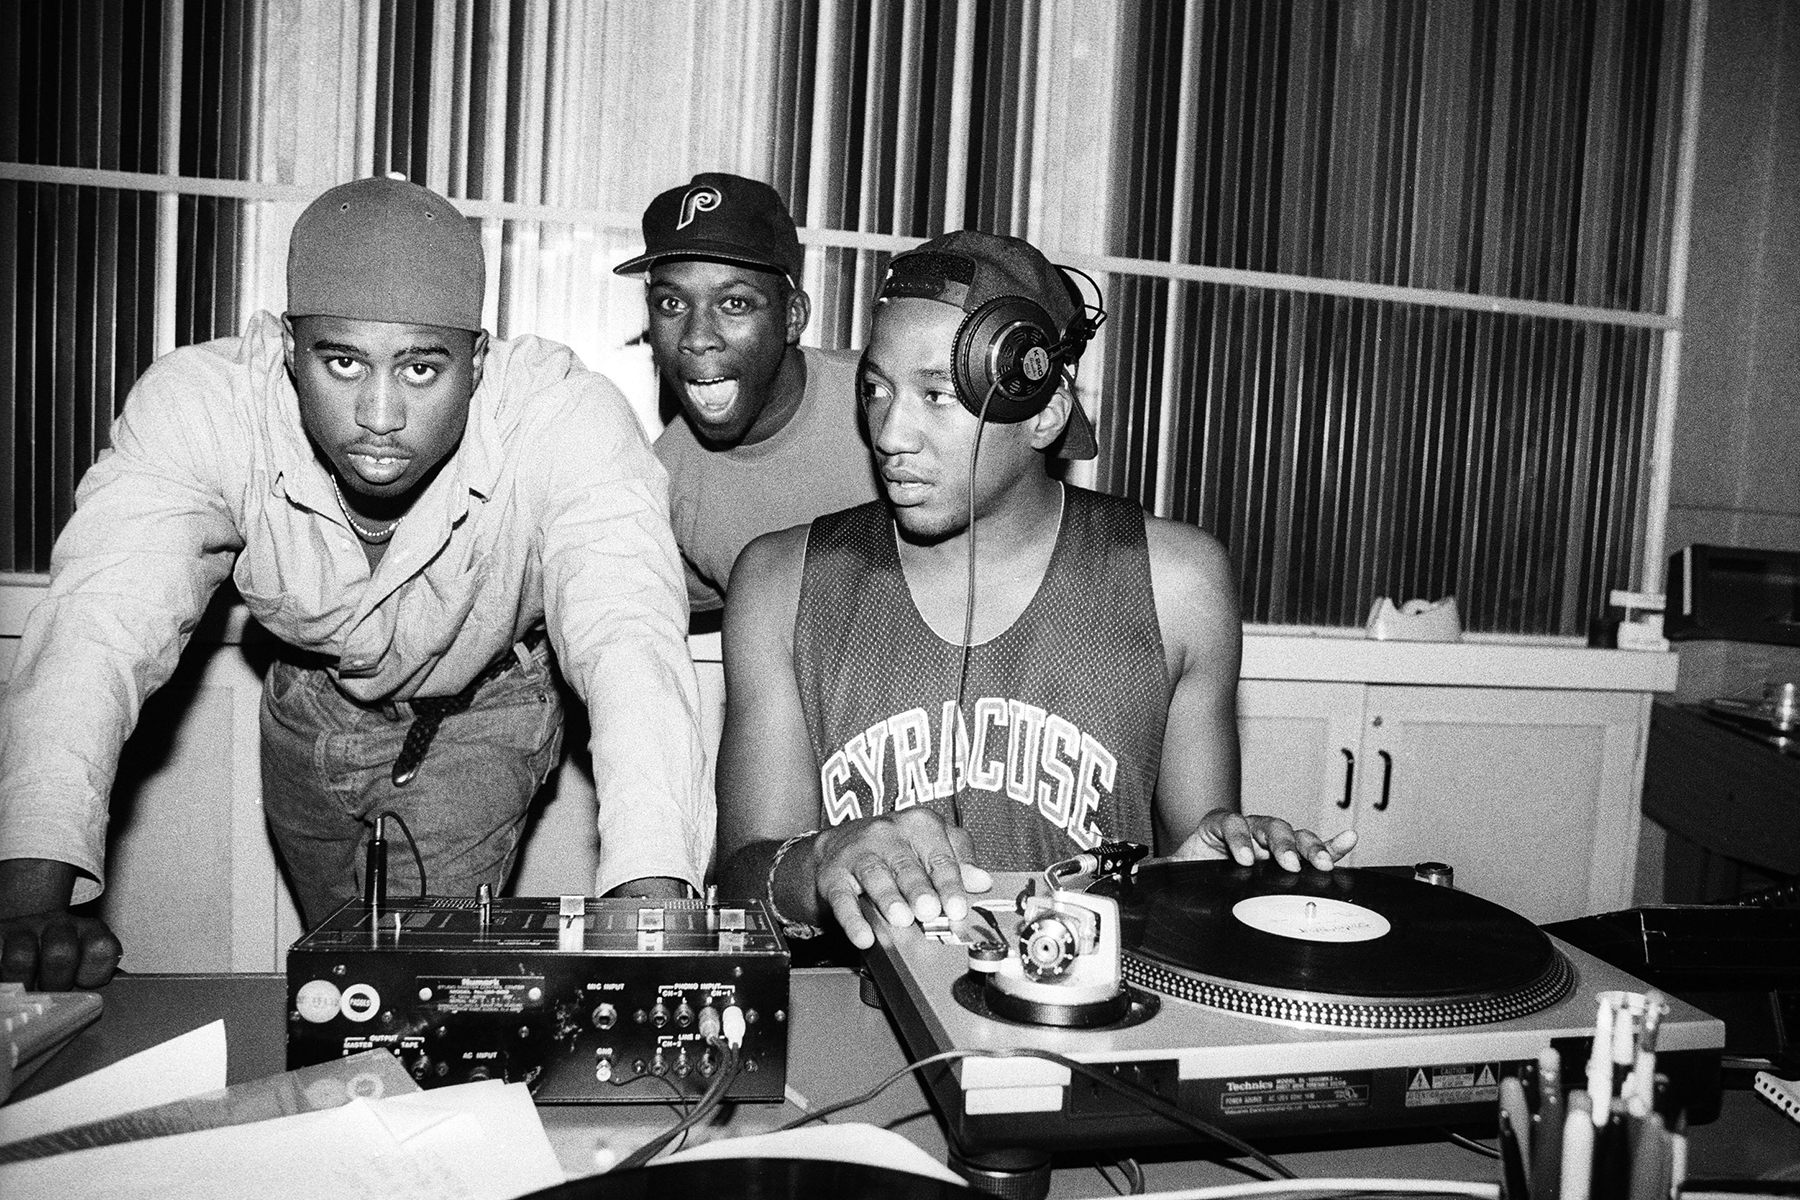 NEW YORK, NY: September 10, 1991: Ali Shaheed Muhammad, Pfife and Q-Tip of A Tribe Called Quest in the recording studio in New York City on September 10, 1991. (Photo By Al Pereira/Getty Images/Michael Ochs Archives)